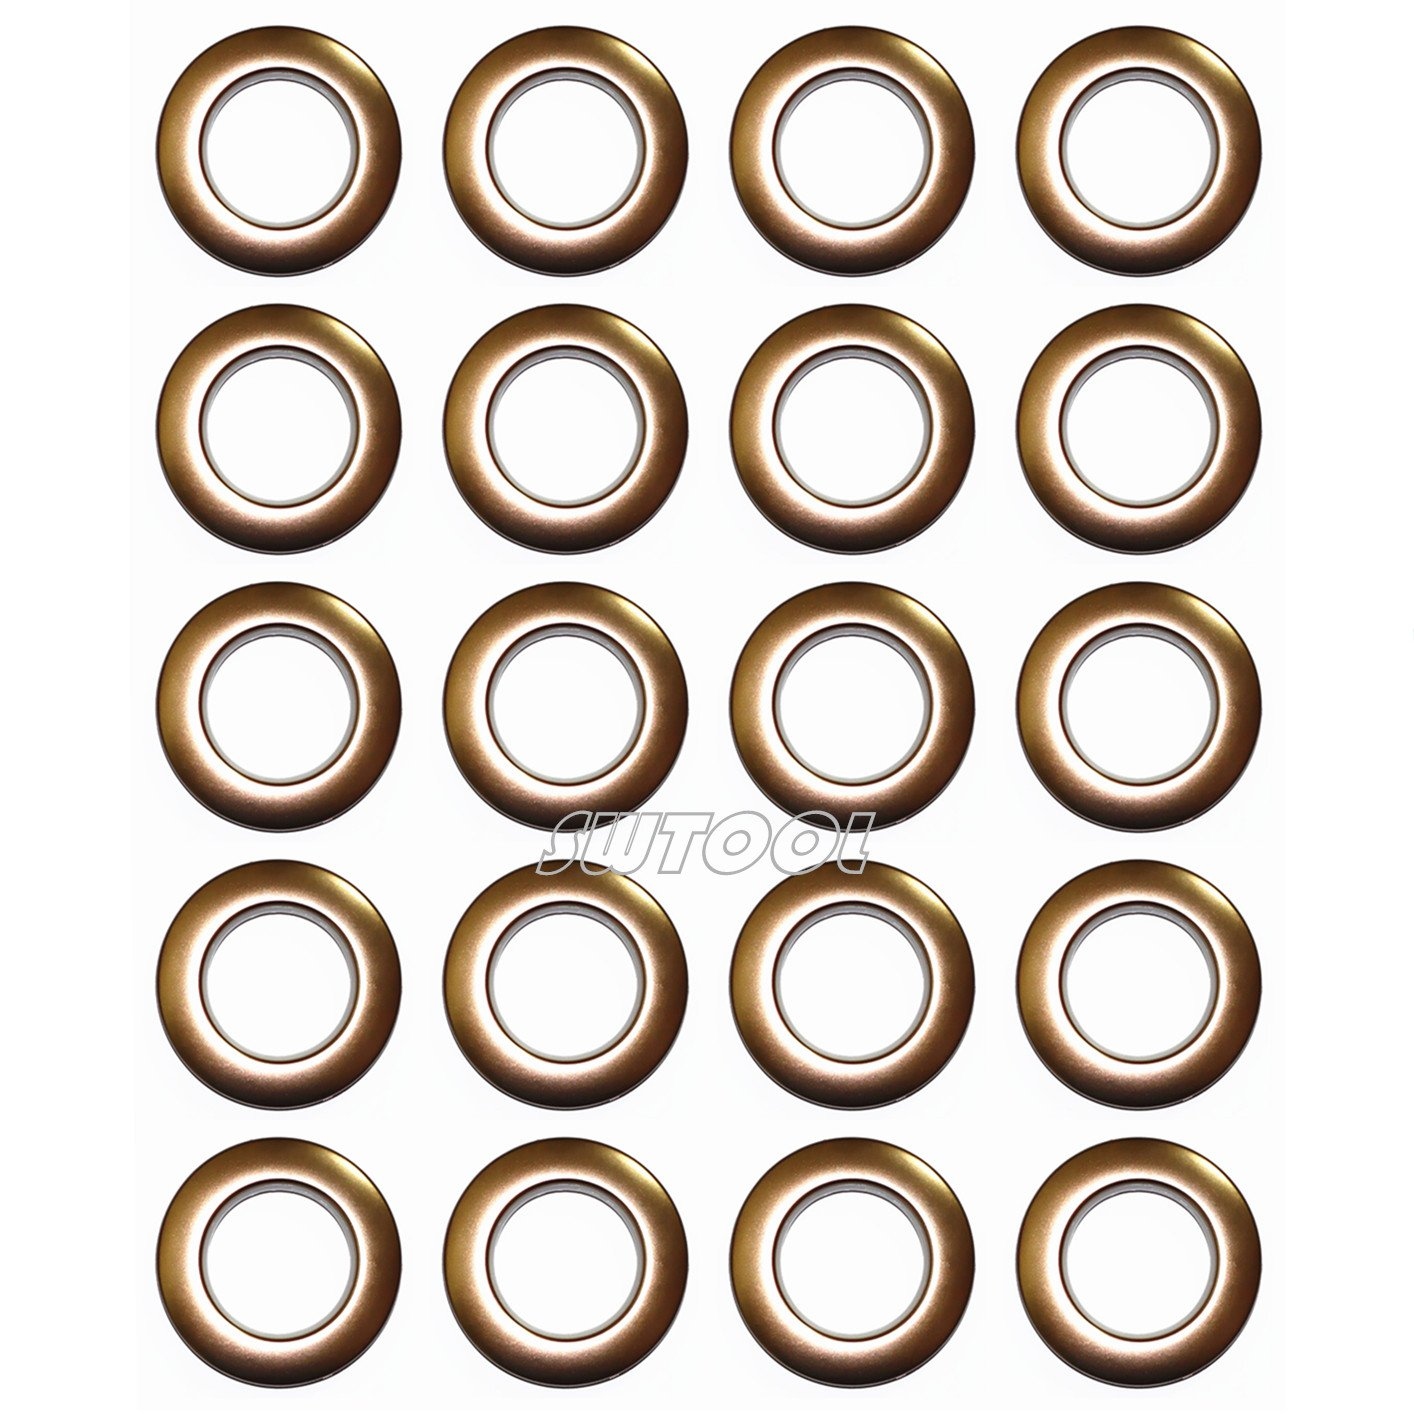 Selling Wonderful 1-9/16-Inch Inner Diameter Curtain Grommets 20-Pack (Brown)